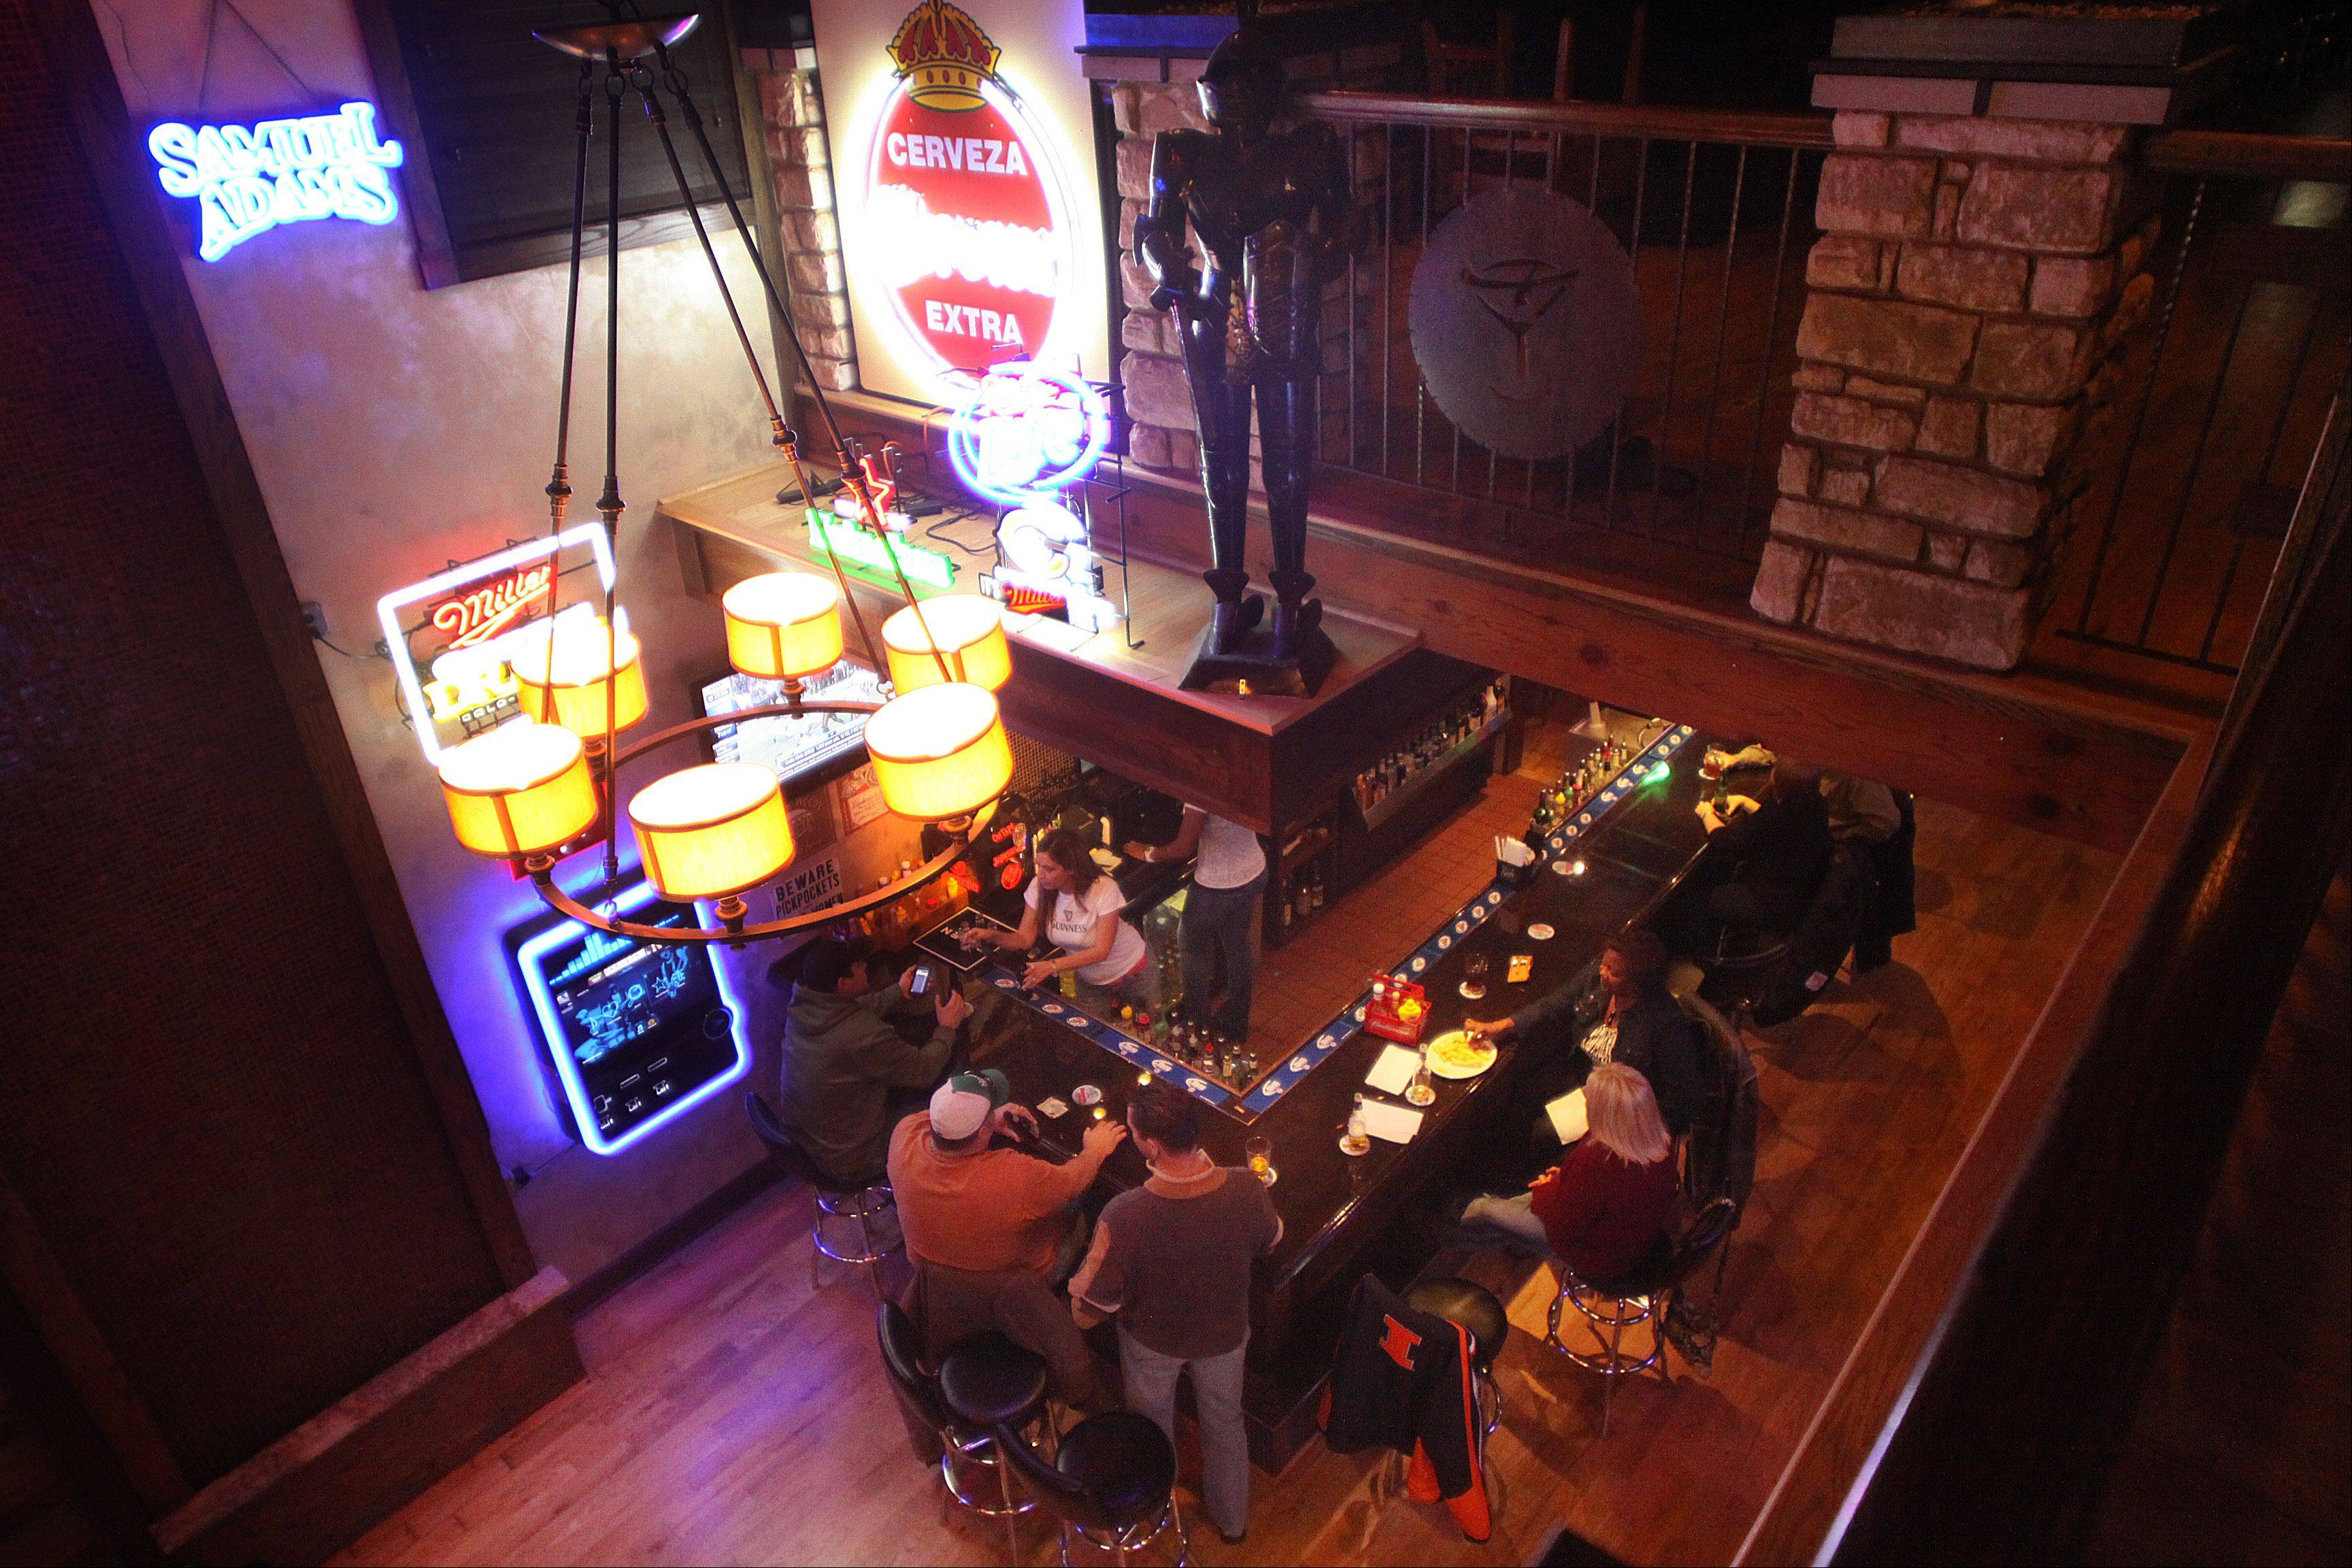 Patrons enjoy food and drinks at the Pour House Bar & Grill in East Dundee.